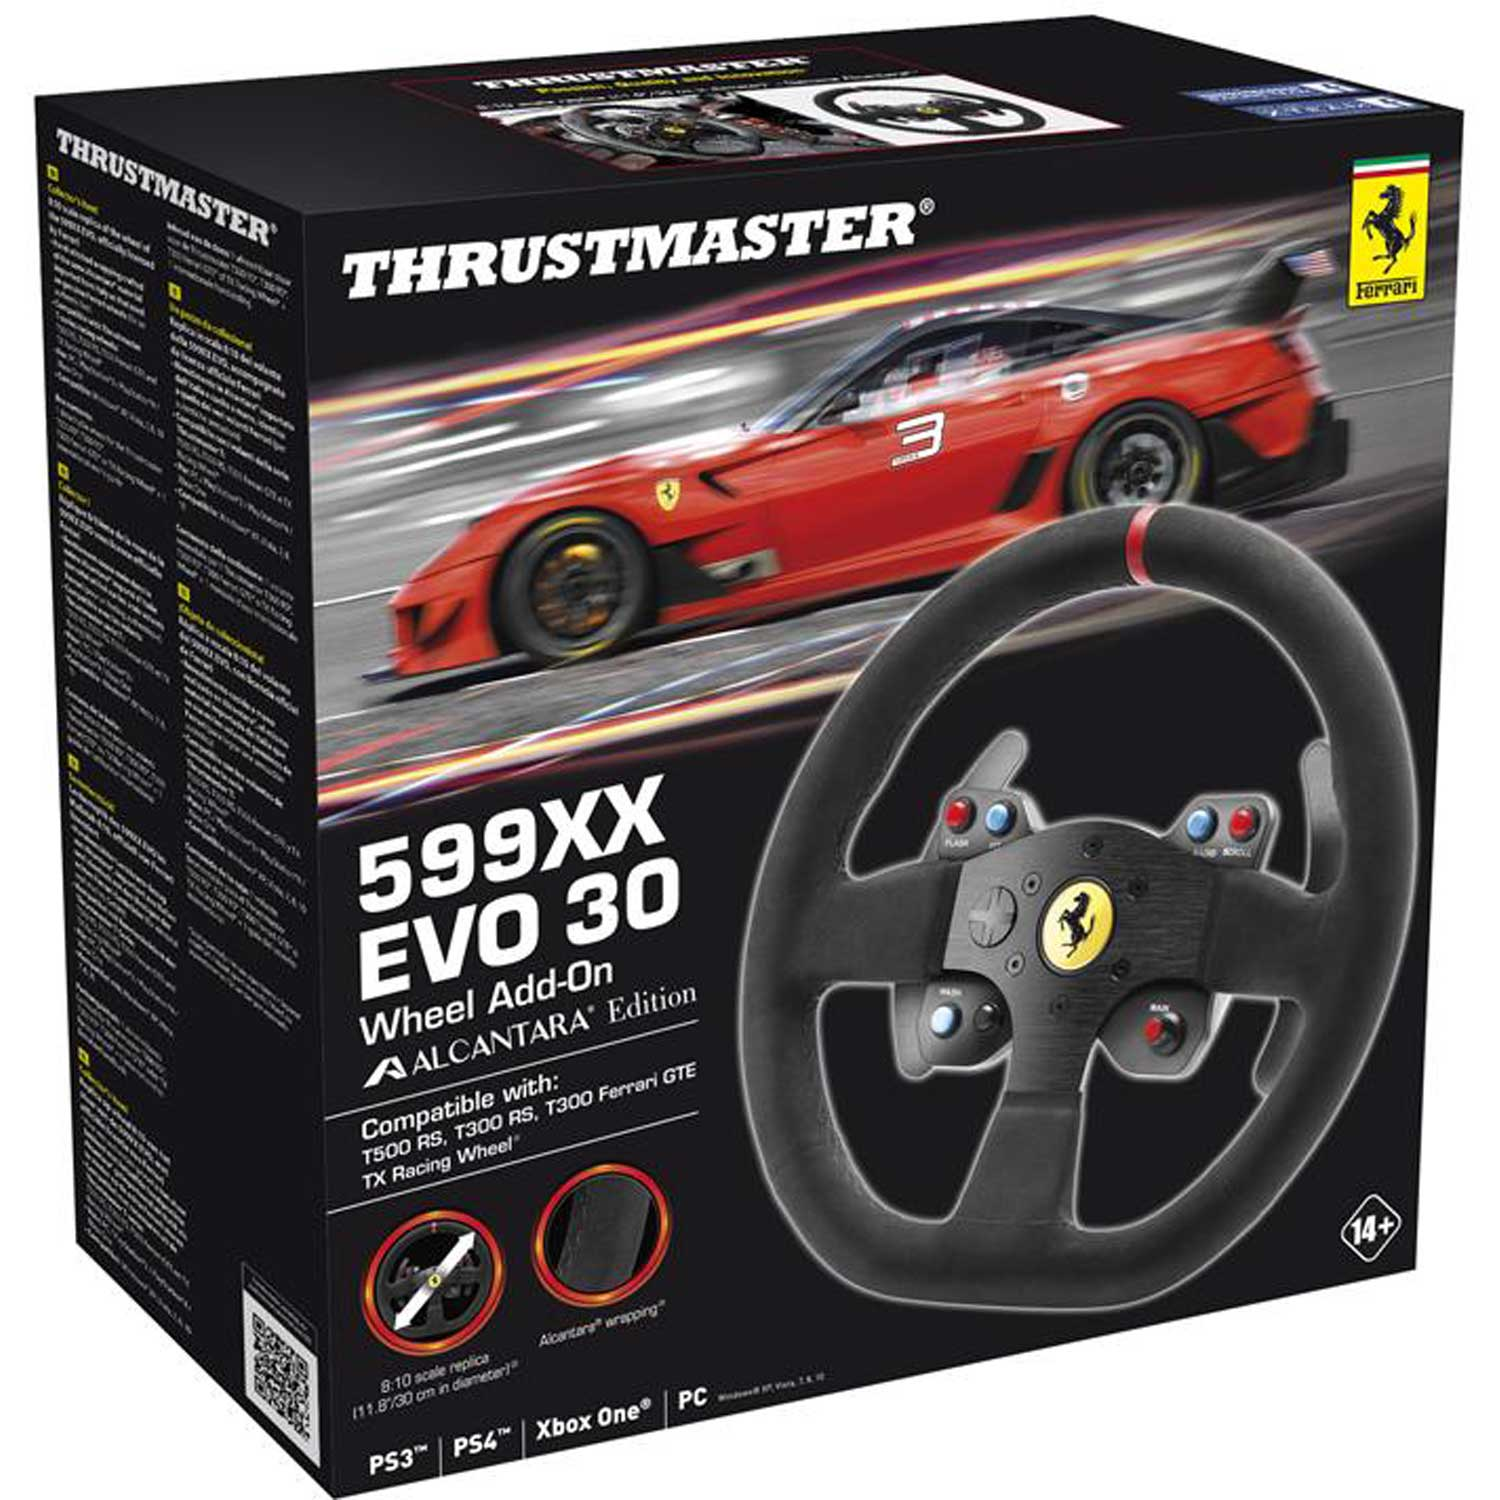 ThrustMaster 599XX EVO 30 Wheel Add-On Alcantara - Périphérique de jeu - 1